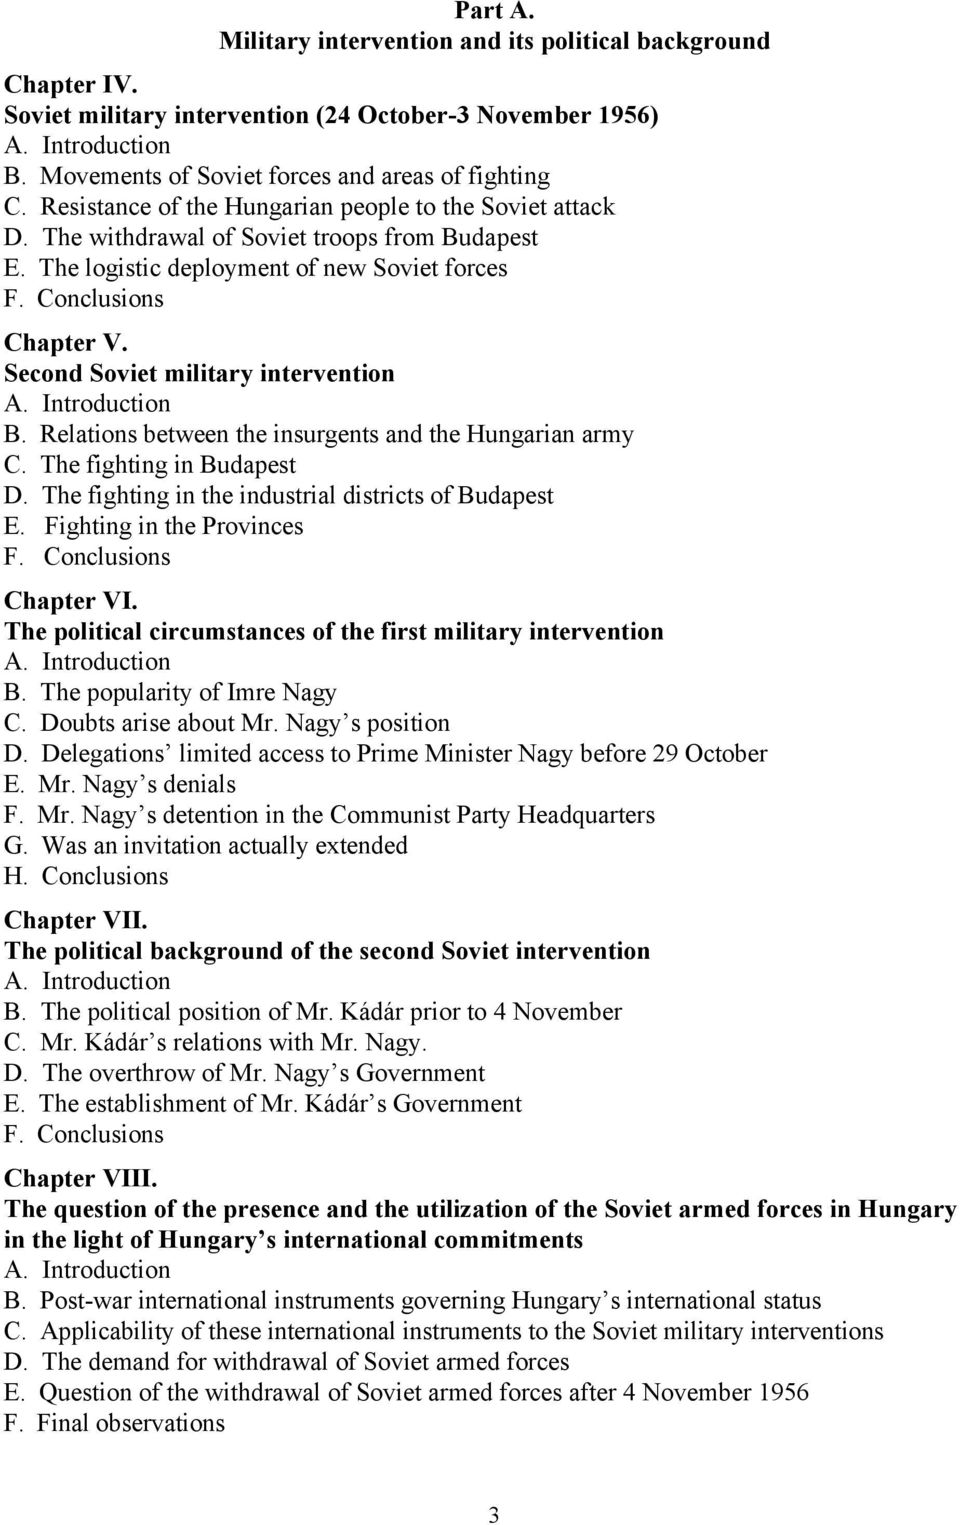 Second Soviet military intervention A. Introduction B. Relations between the insurgents and the Hungarian army C. The fighting in Budapest D. The fighting in the industrial districts of Budapest E.